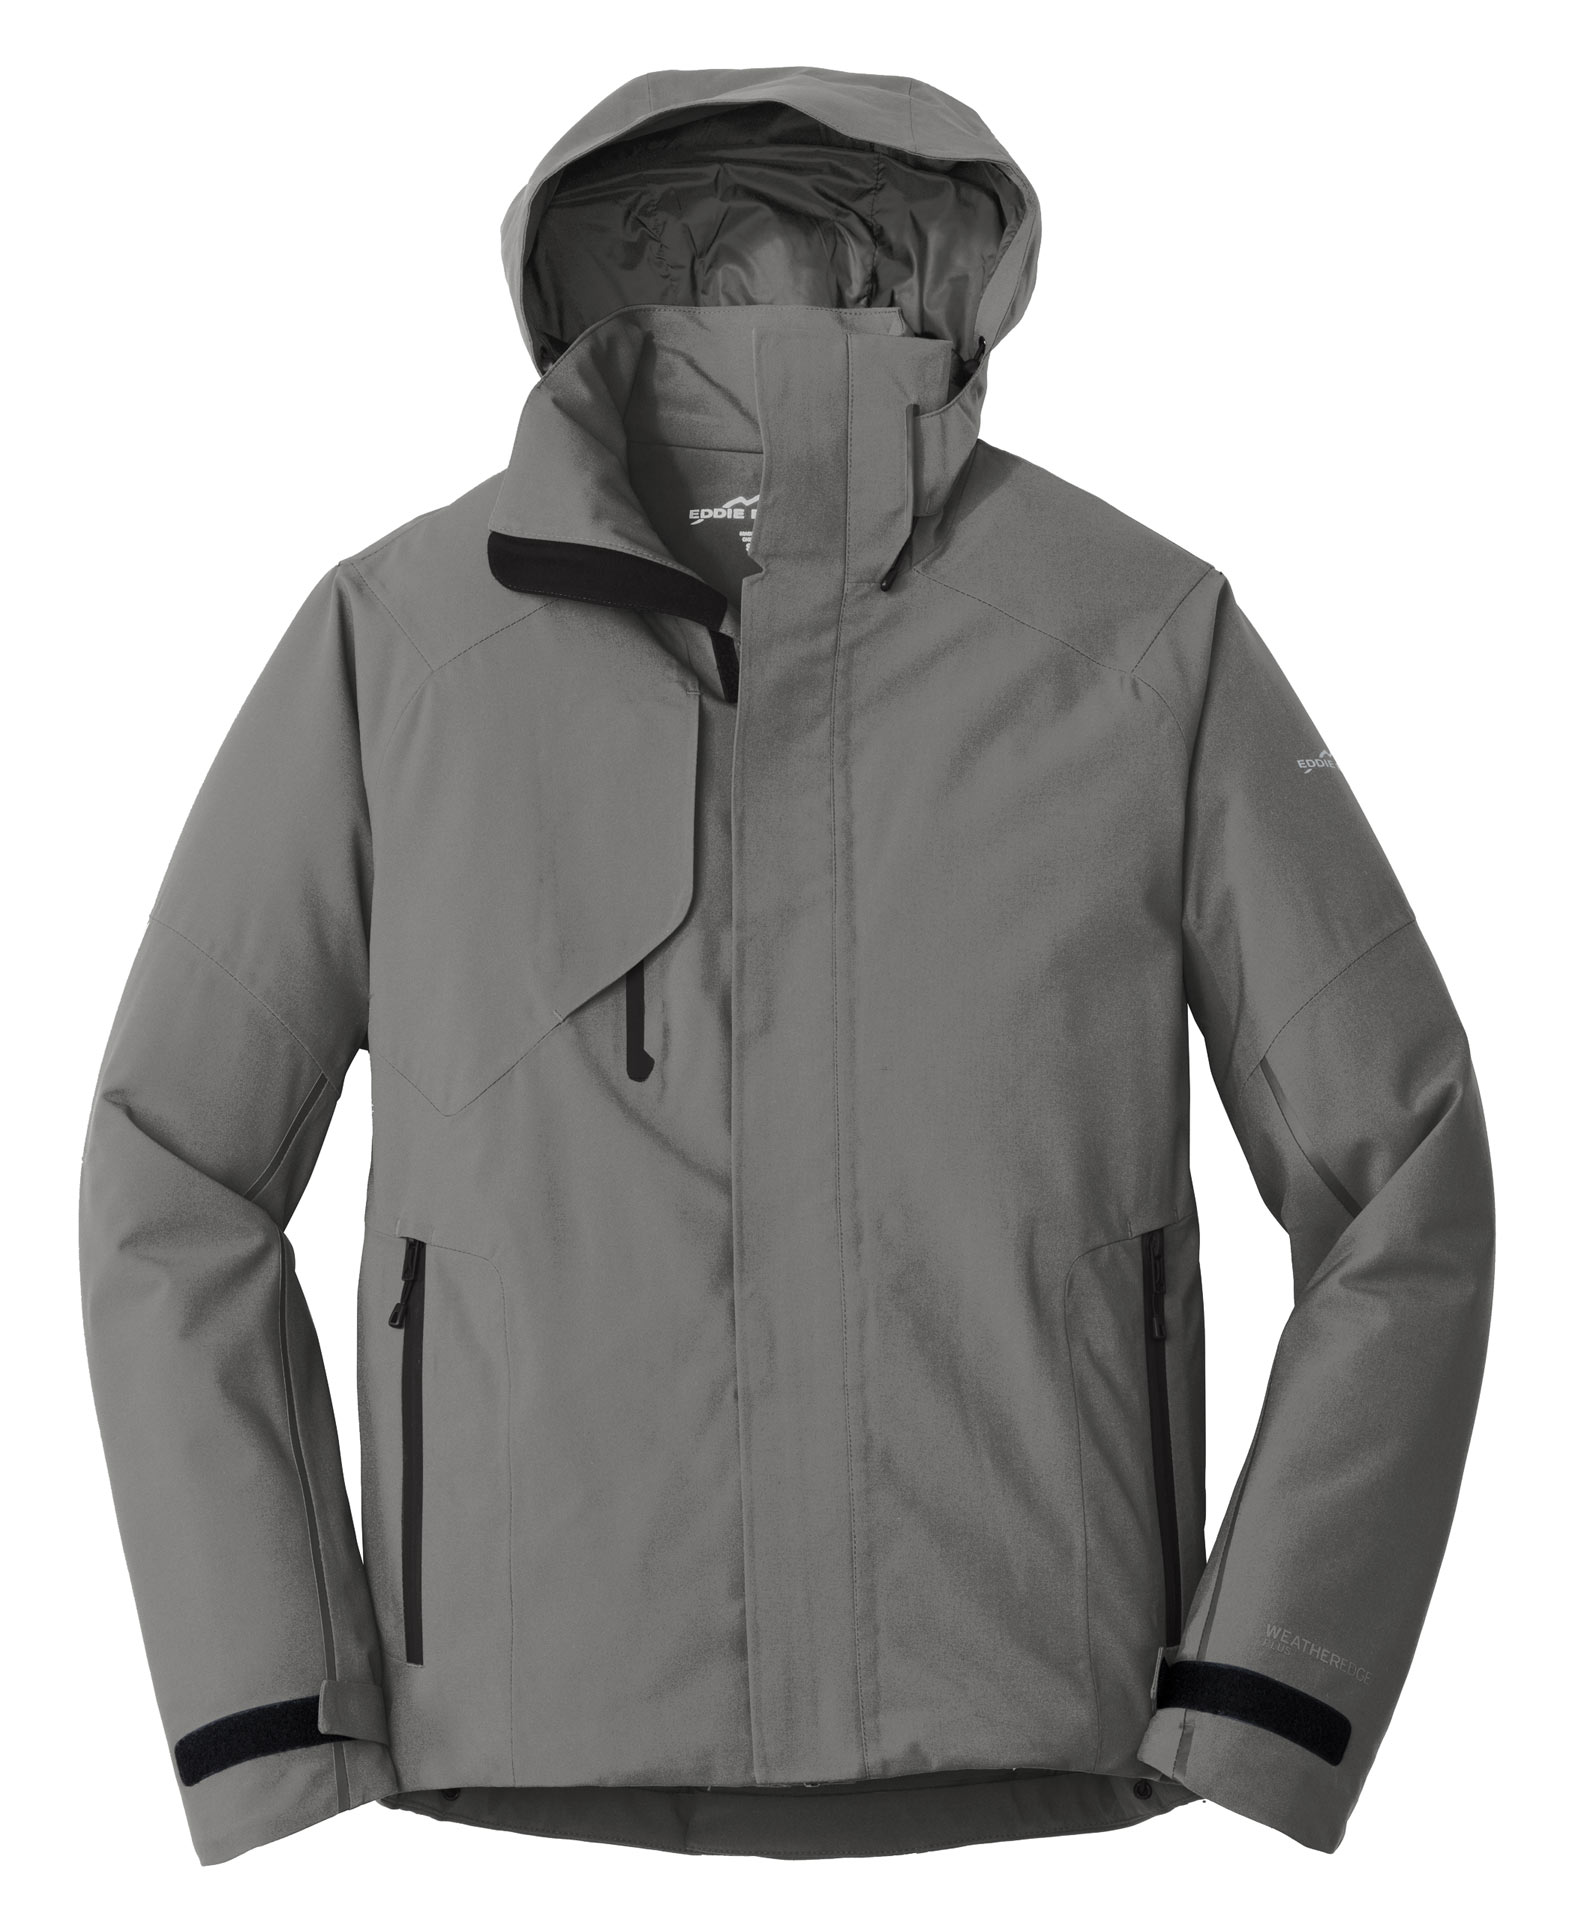 93d246b1d Eddie Bauer® Mens WeatherEdge® Plus Insulated Jacket